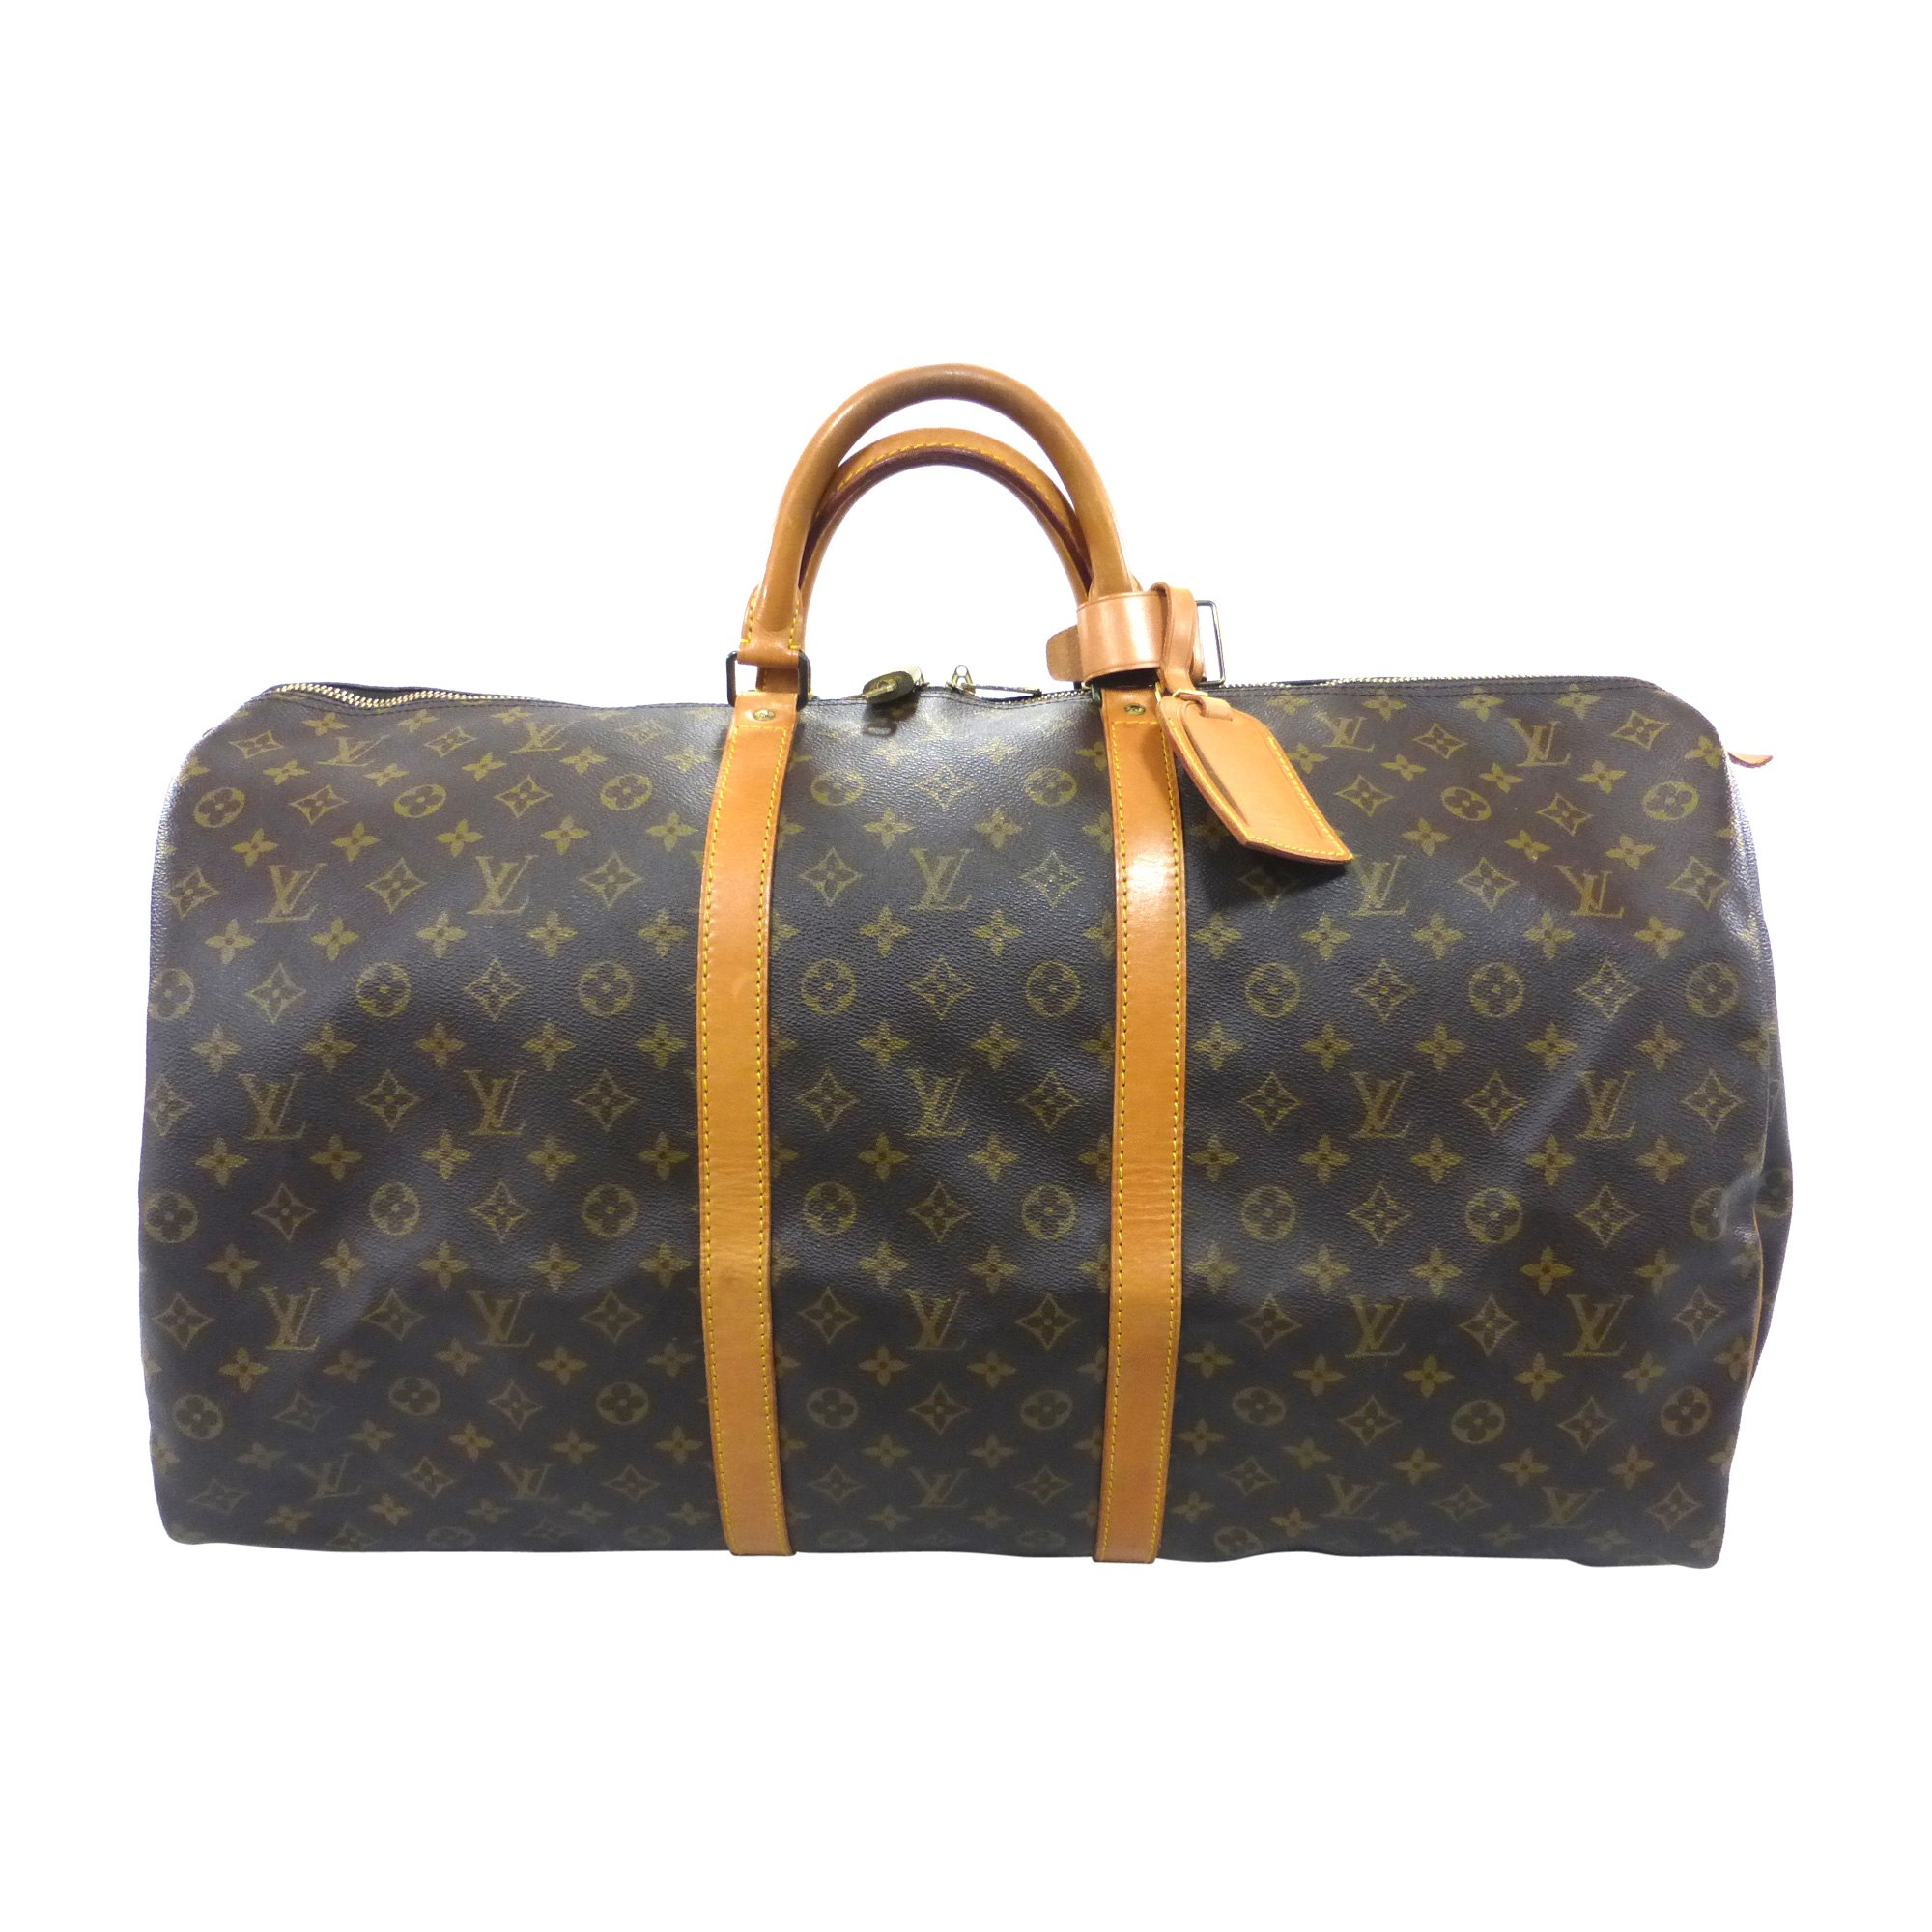 4ad9c74edb00 Sac XL en cuir LOUIS VUITTON keepall marron vendu par Bibag - 7151762